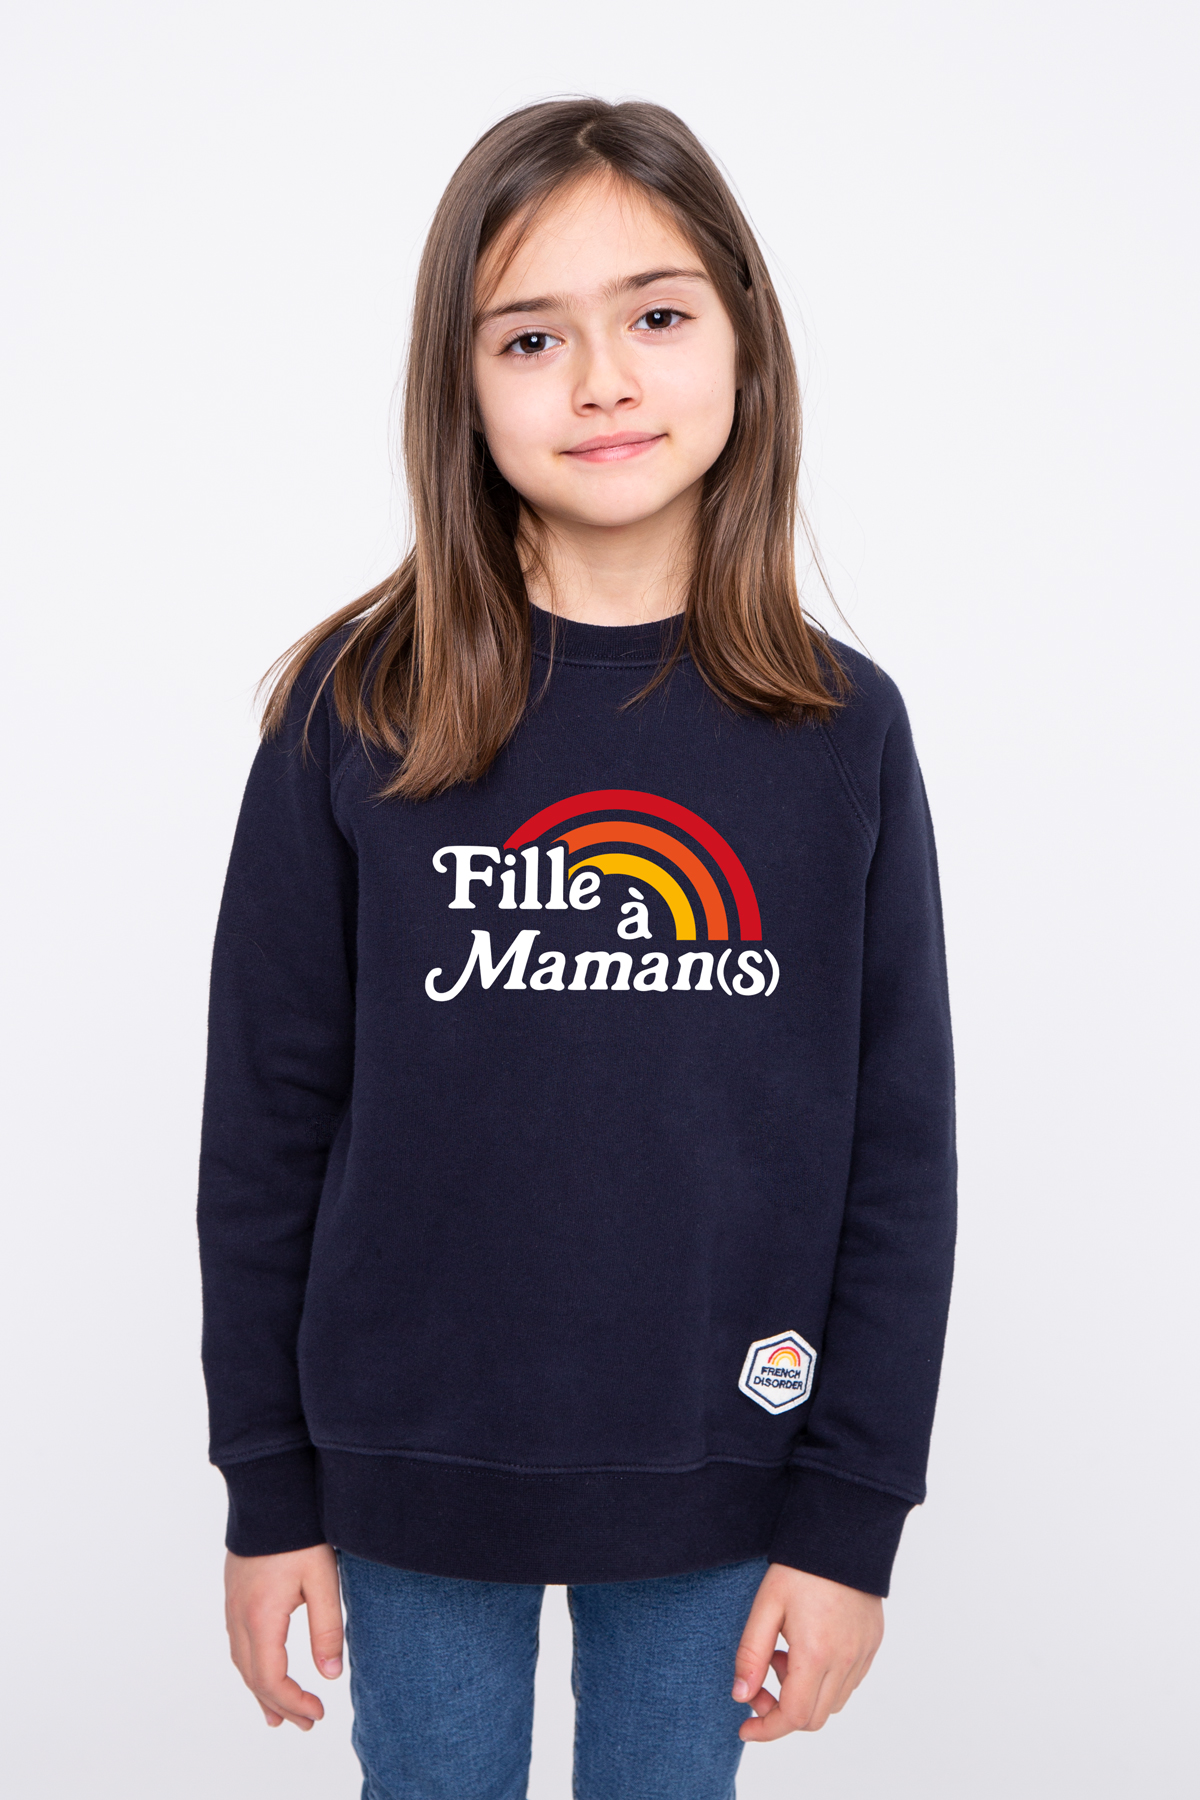 Sweat enfant FILLE A MAMAN(S) French Disorder